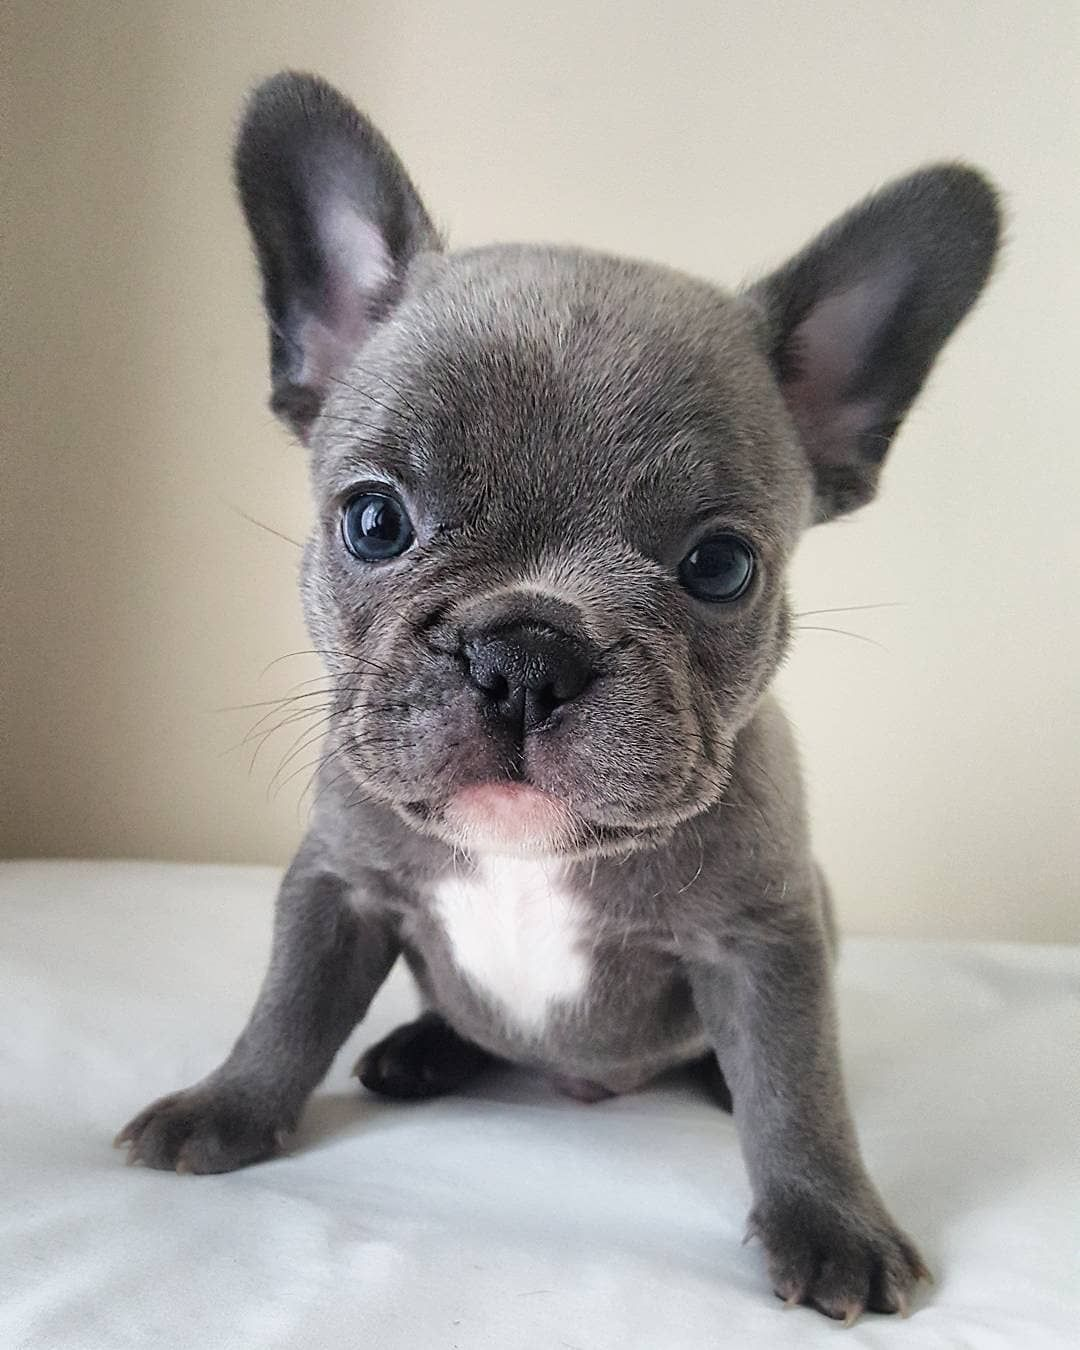 """� D A I L Y F R E N C H I E � on Instagram: """"� F R E D D I E � Feature of @liverloves_frenchbulldogs � . #frenchbulldog #frenchbulldogpuppies #frenchbulldogs #frenchbulldogsofinstagram…"""""""